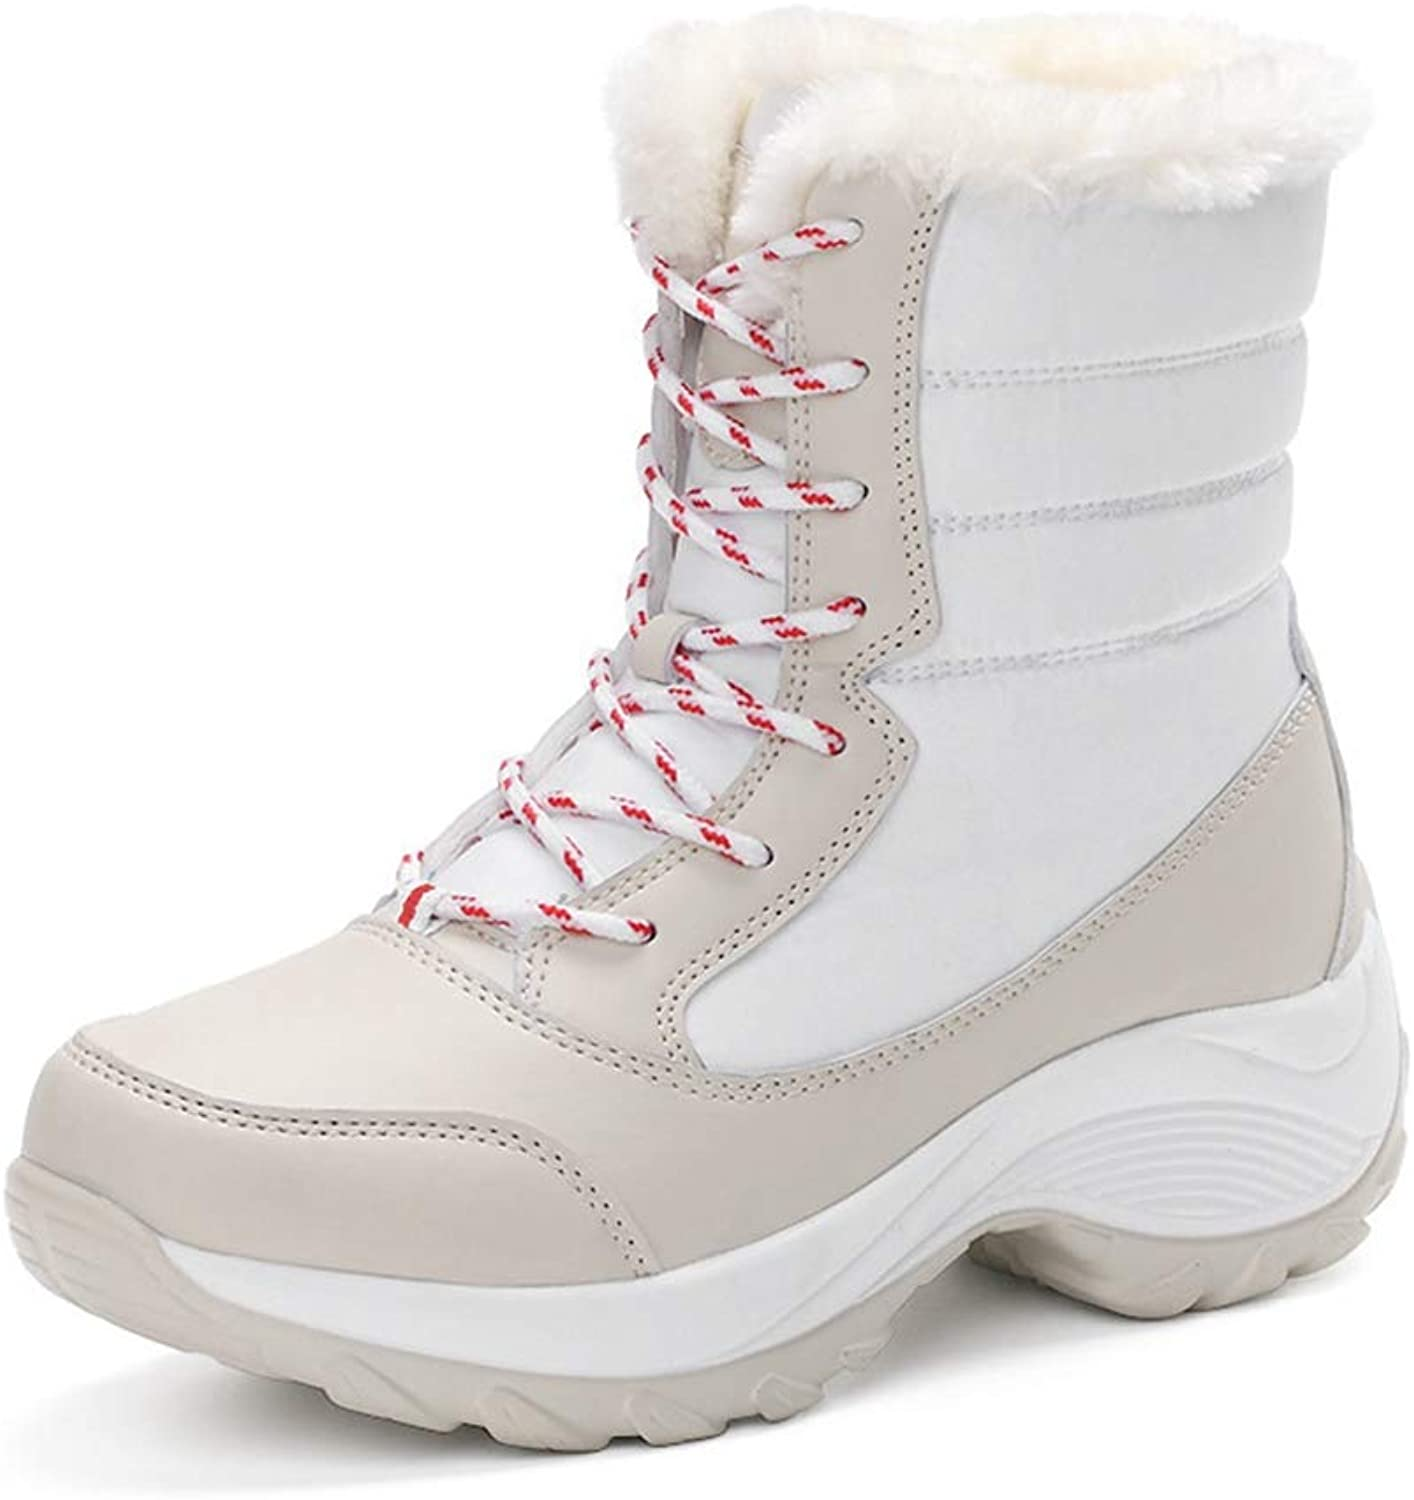 Hoxekle Short Plush Warm Platform Snow Boots Women Lace Up with Fur Winter shoes Casual Comfortable Waterproof Ankle Boots